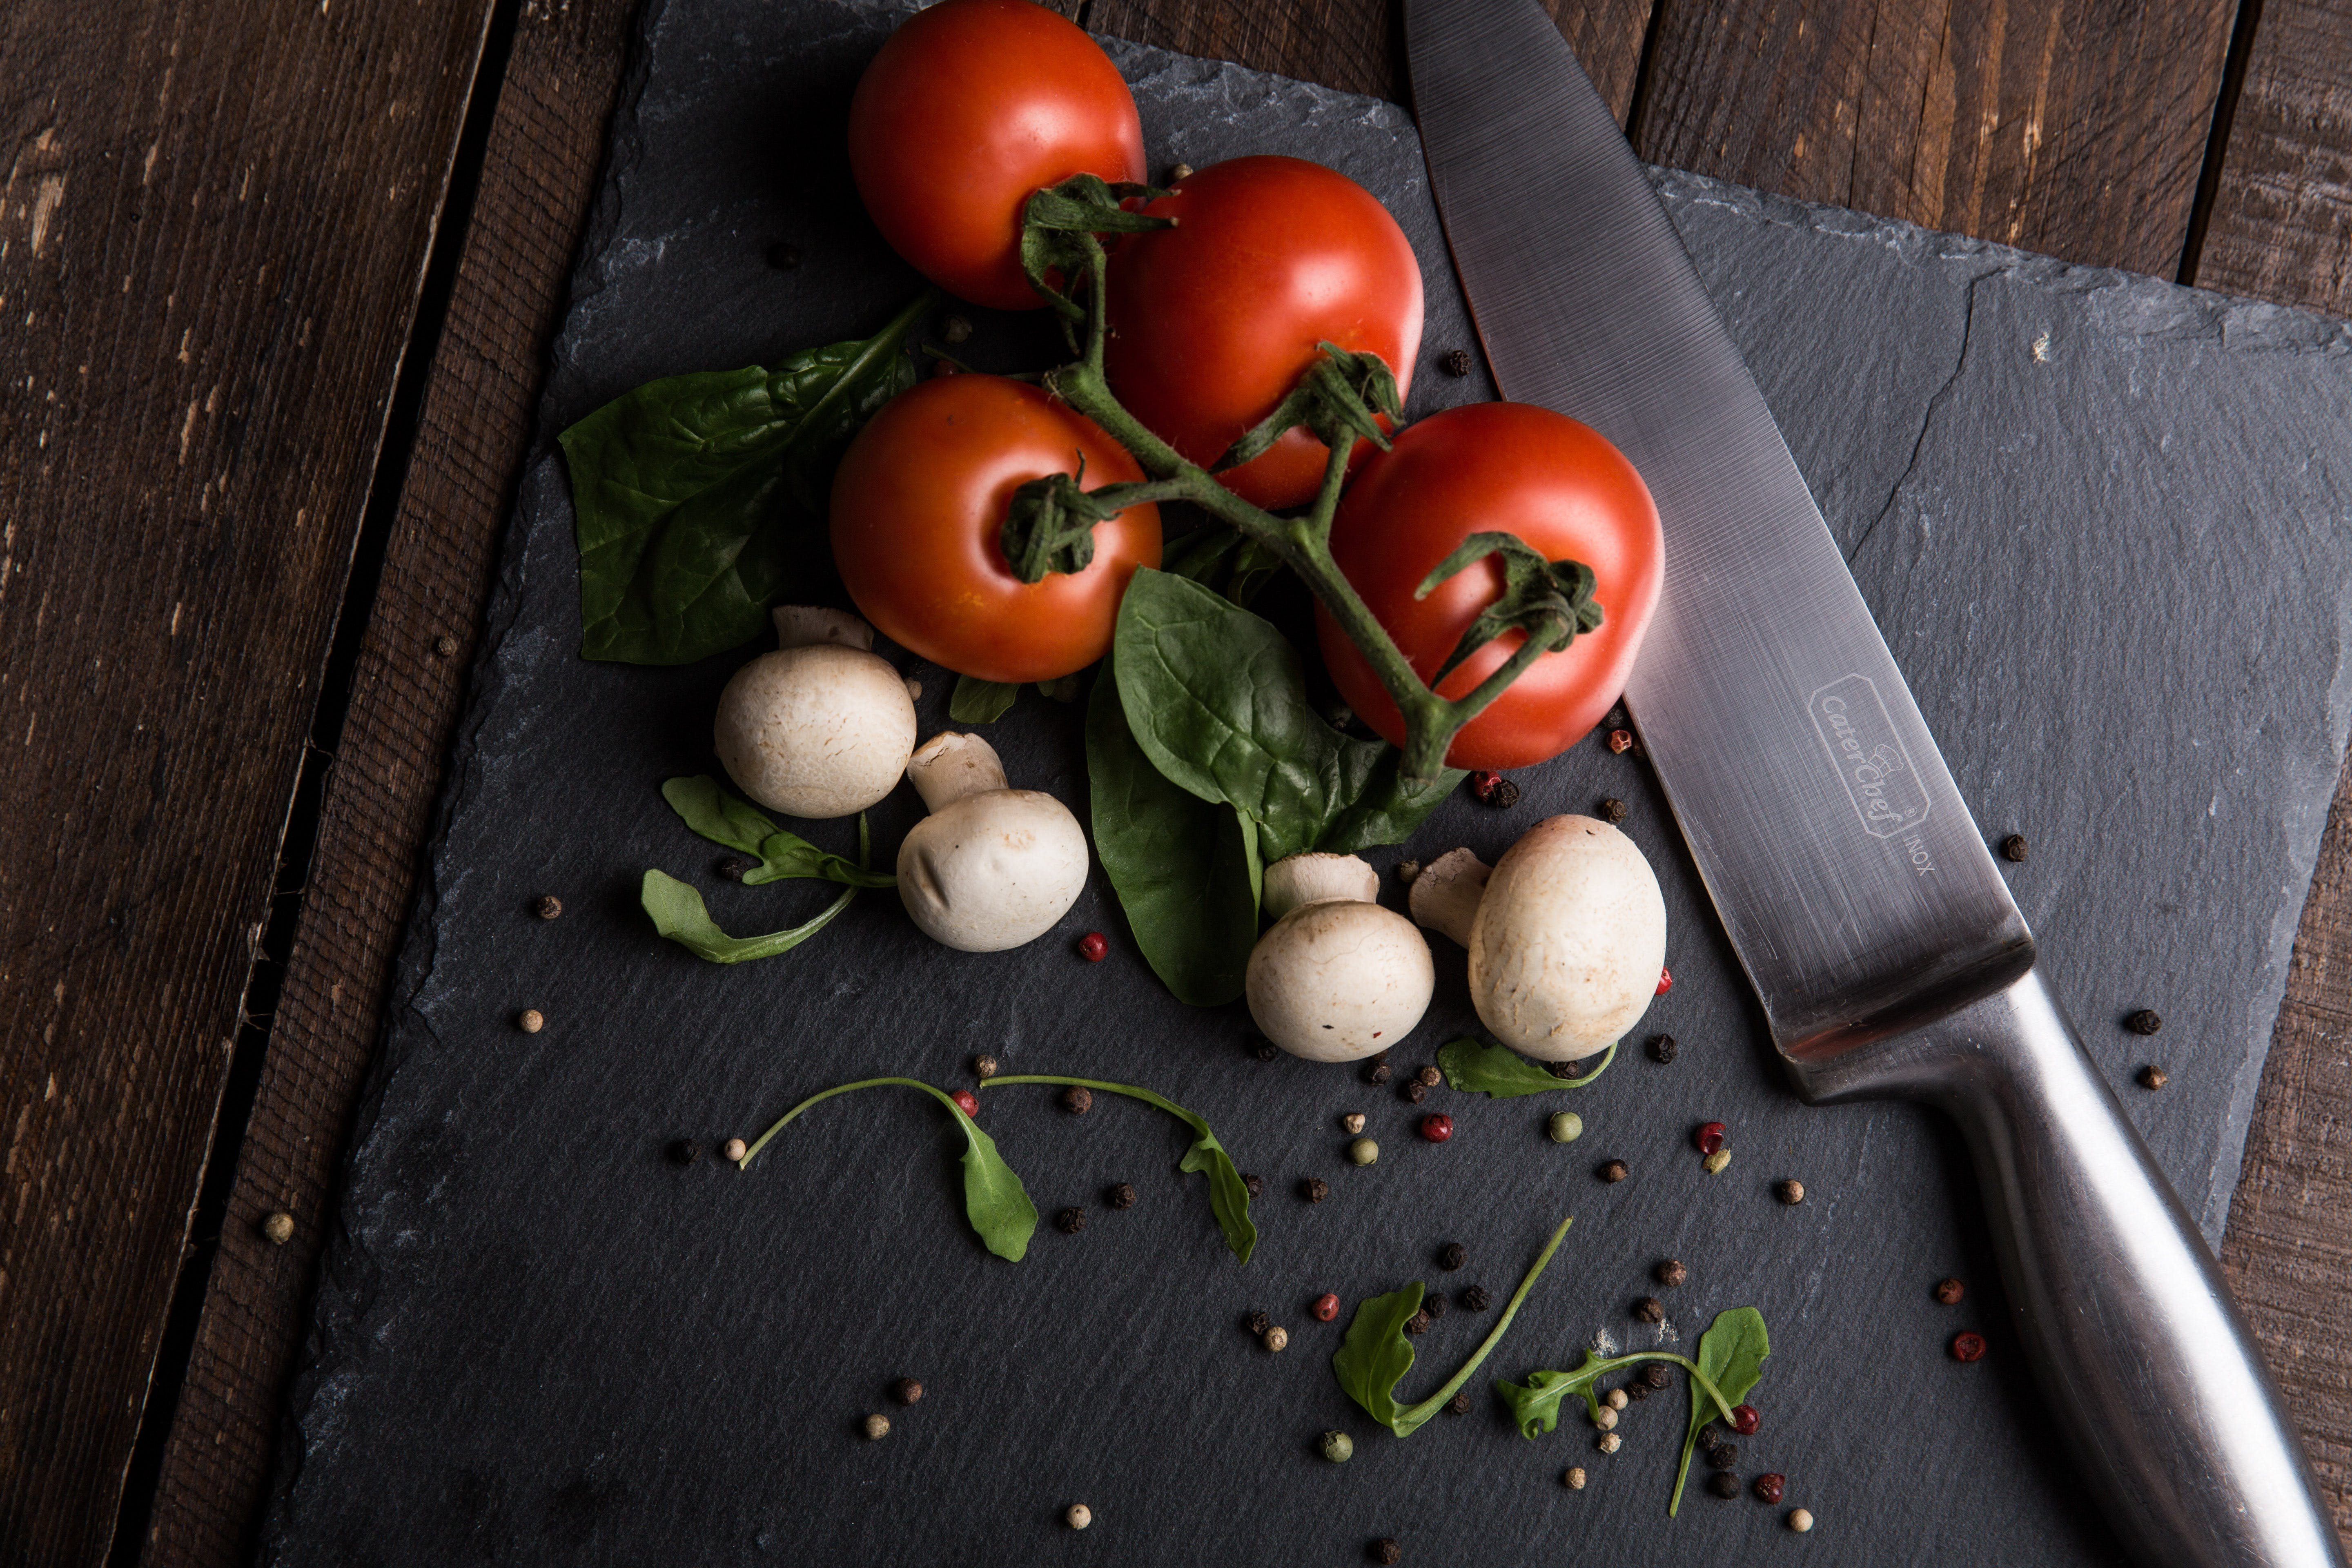 Free stock photo of tomatoes, spices, knife, ingredients